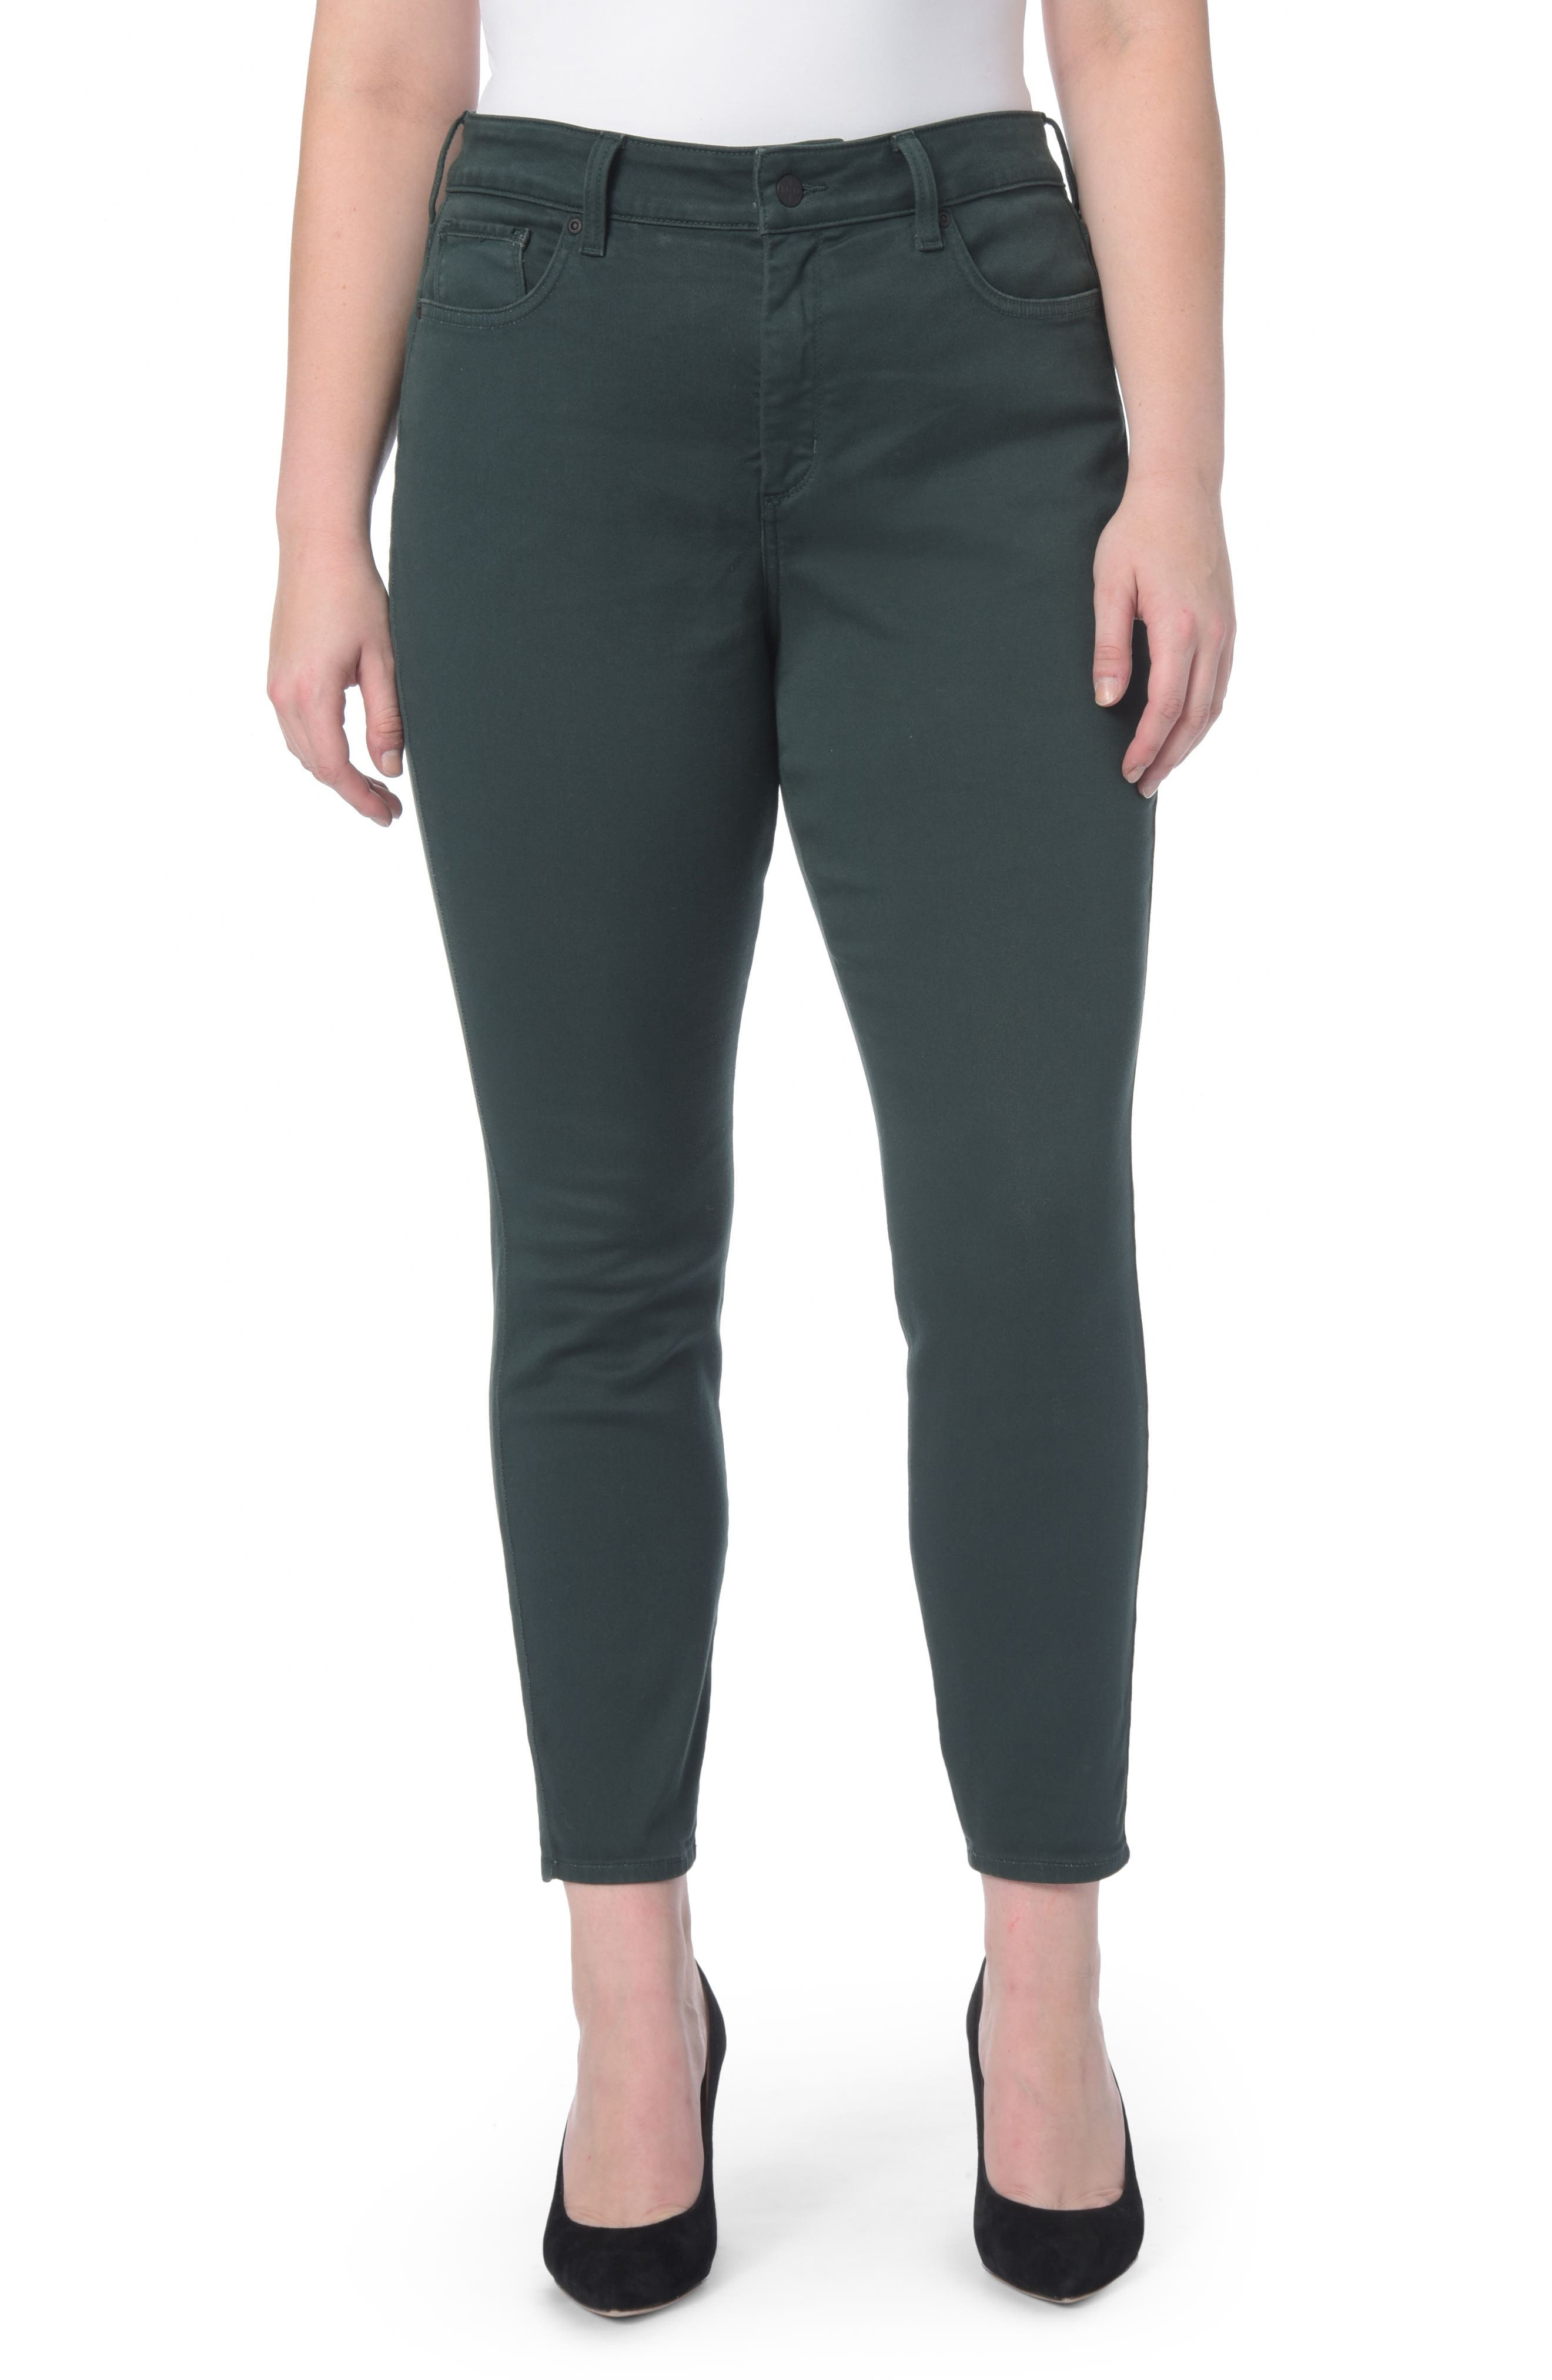 Ami Stretch Skinny Jeans,                         Main,                         color, Green